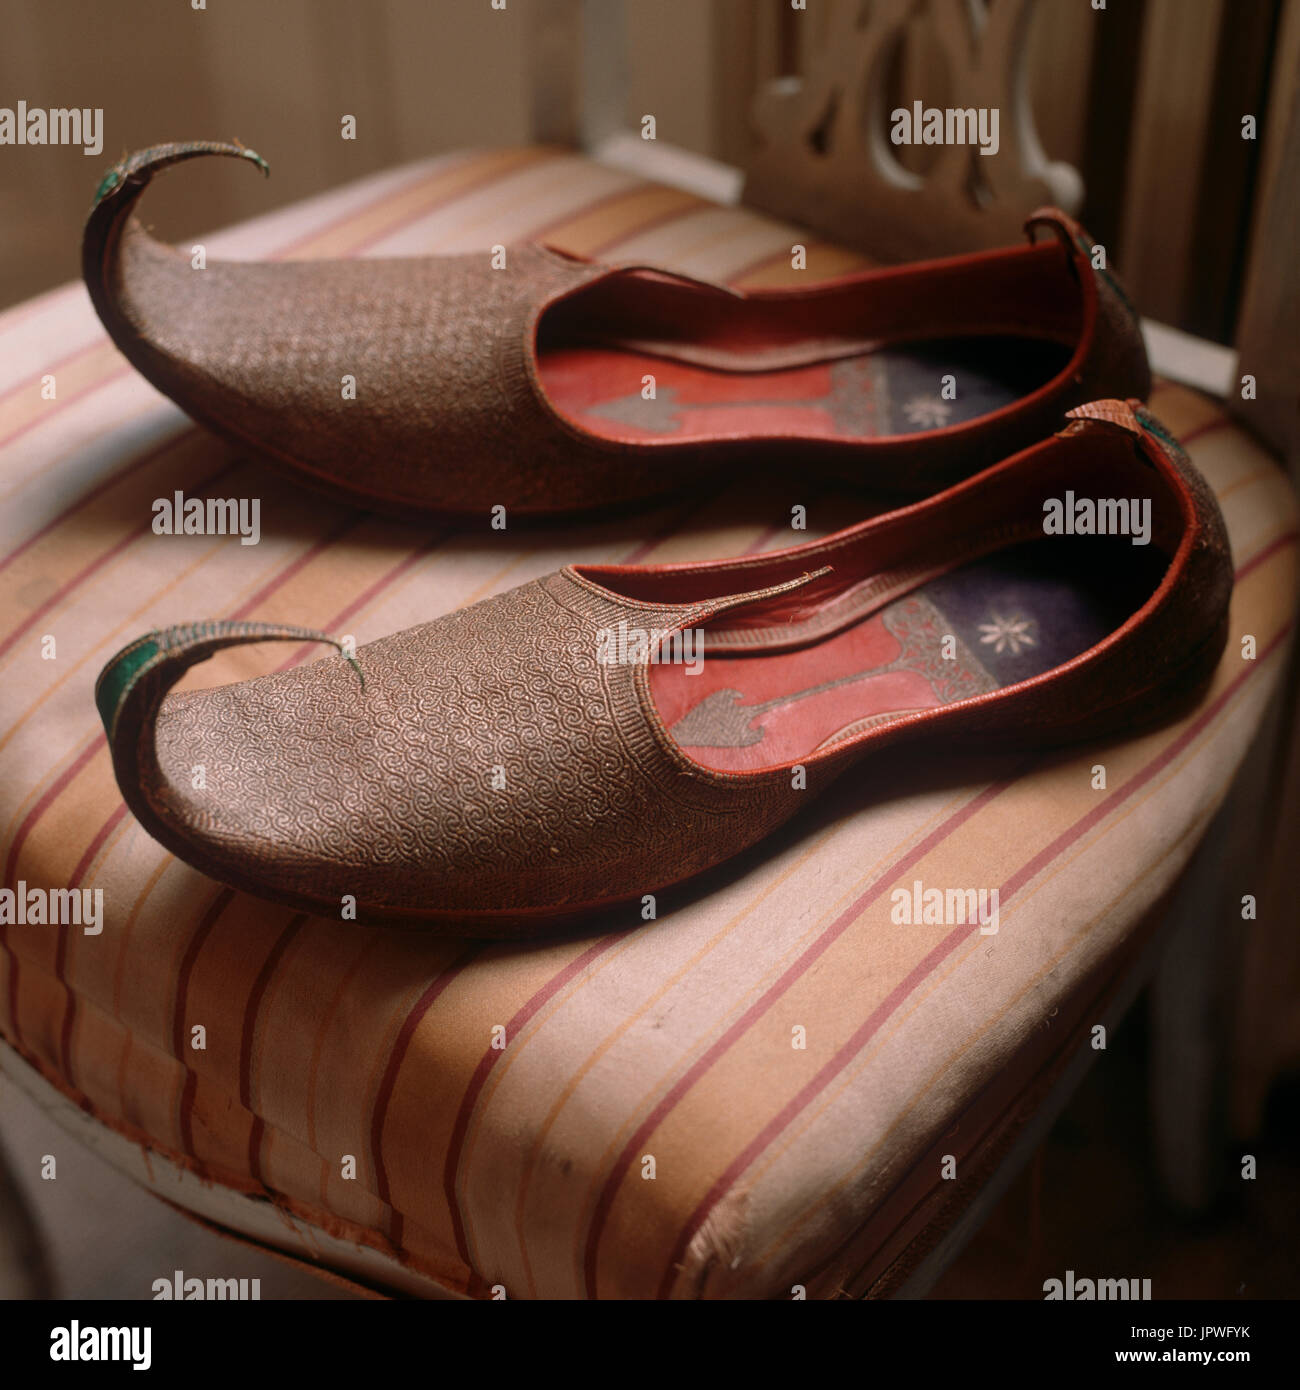 Arabic Shoes On Chair